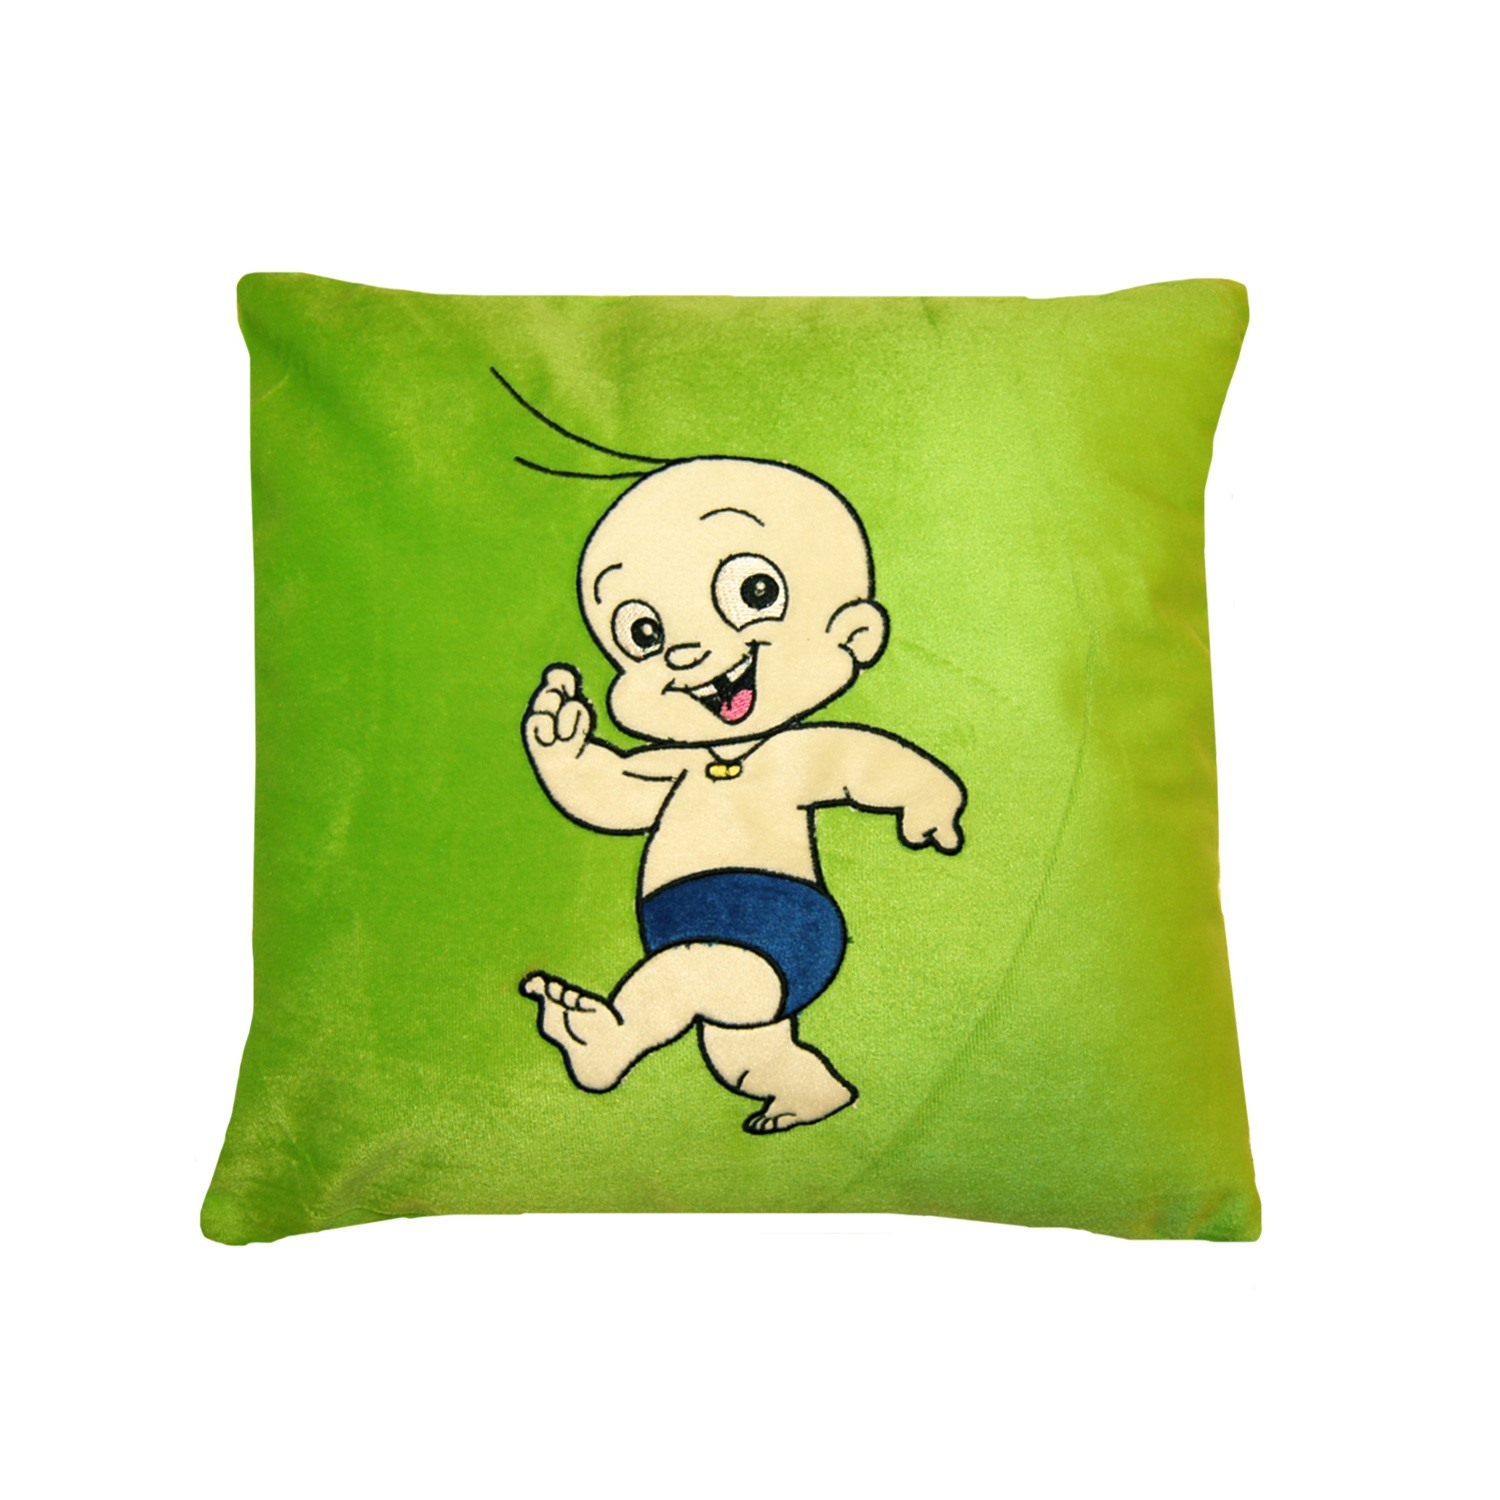 Vividha 455 Stuffed Cushion Cb-Jungle 36X36 Cms Green